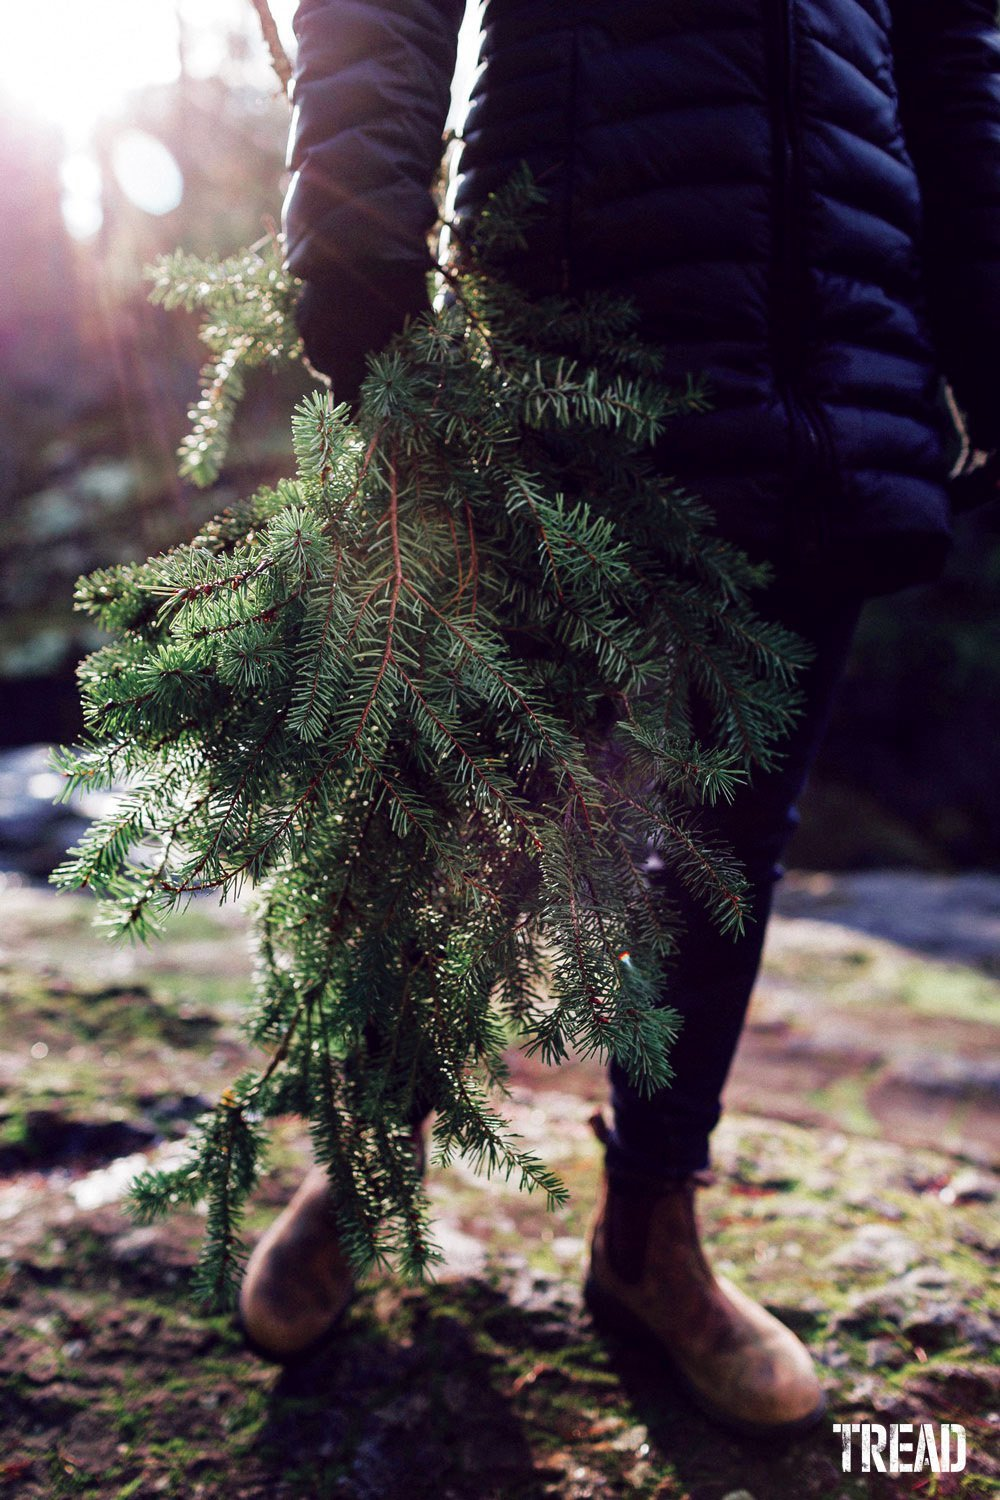 When foraging, gather fresh fallen boughs rather than taking from the tree itself